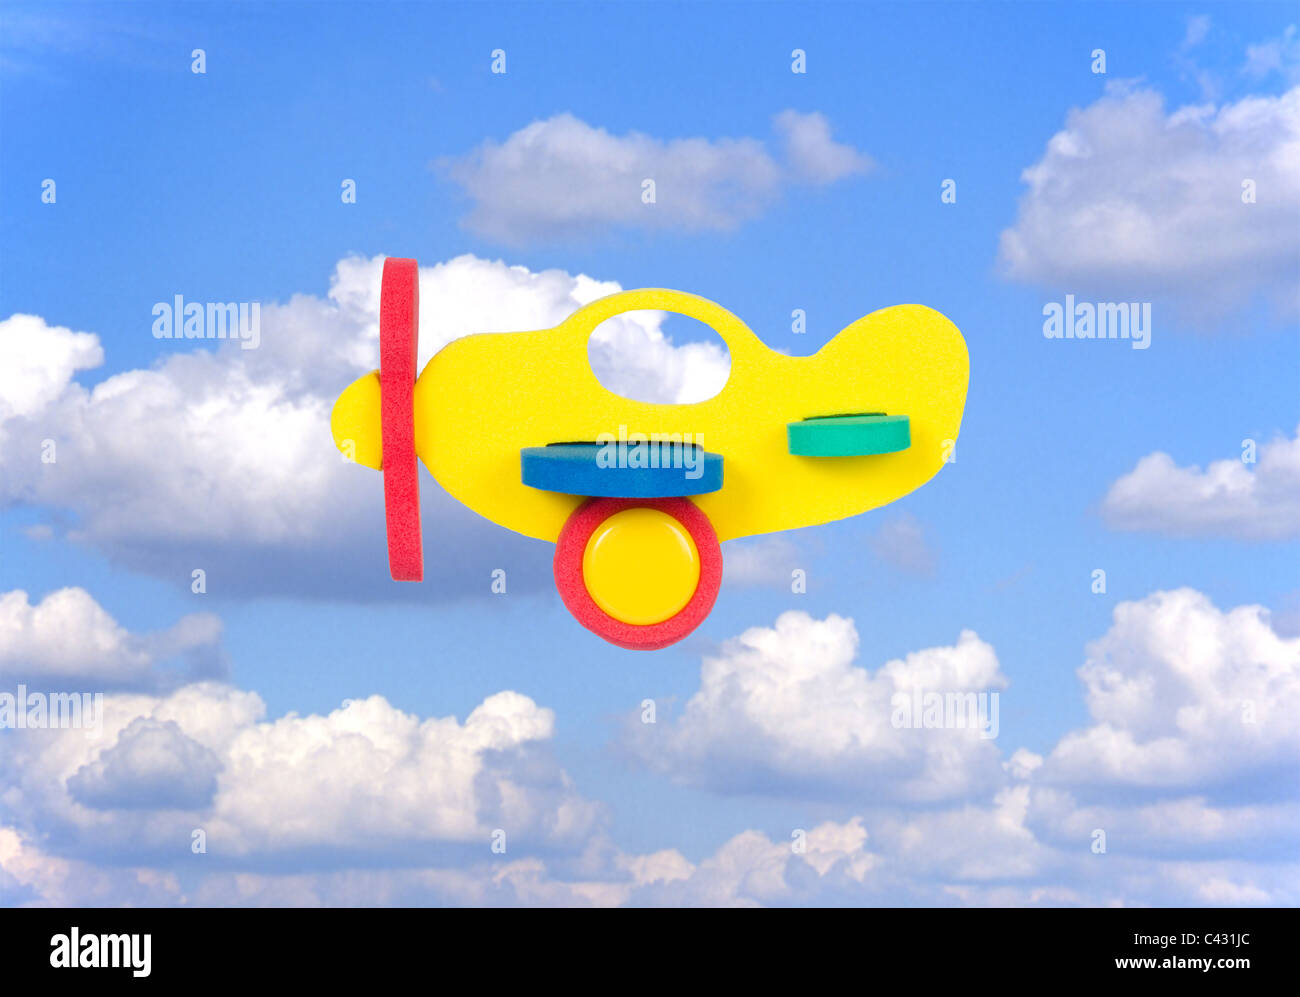 toy aeroplane cut-out against blue sky background with clouds - Stock Image